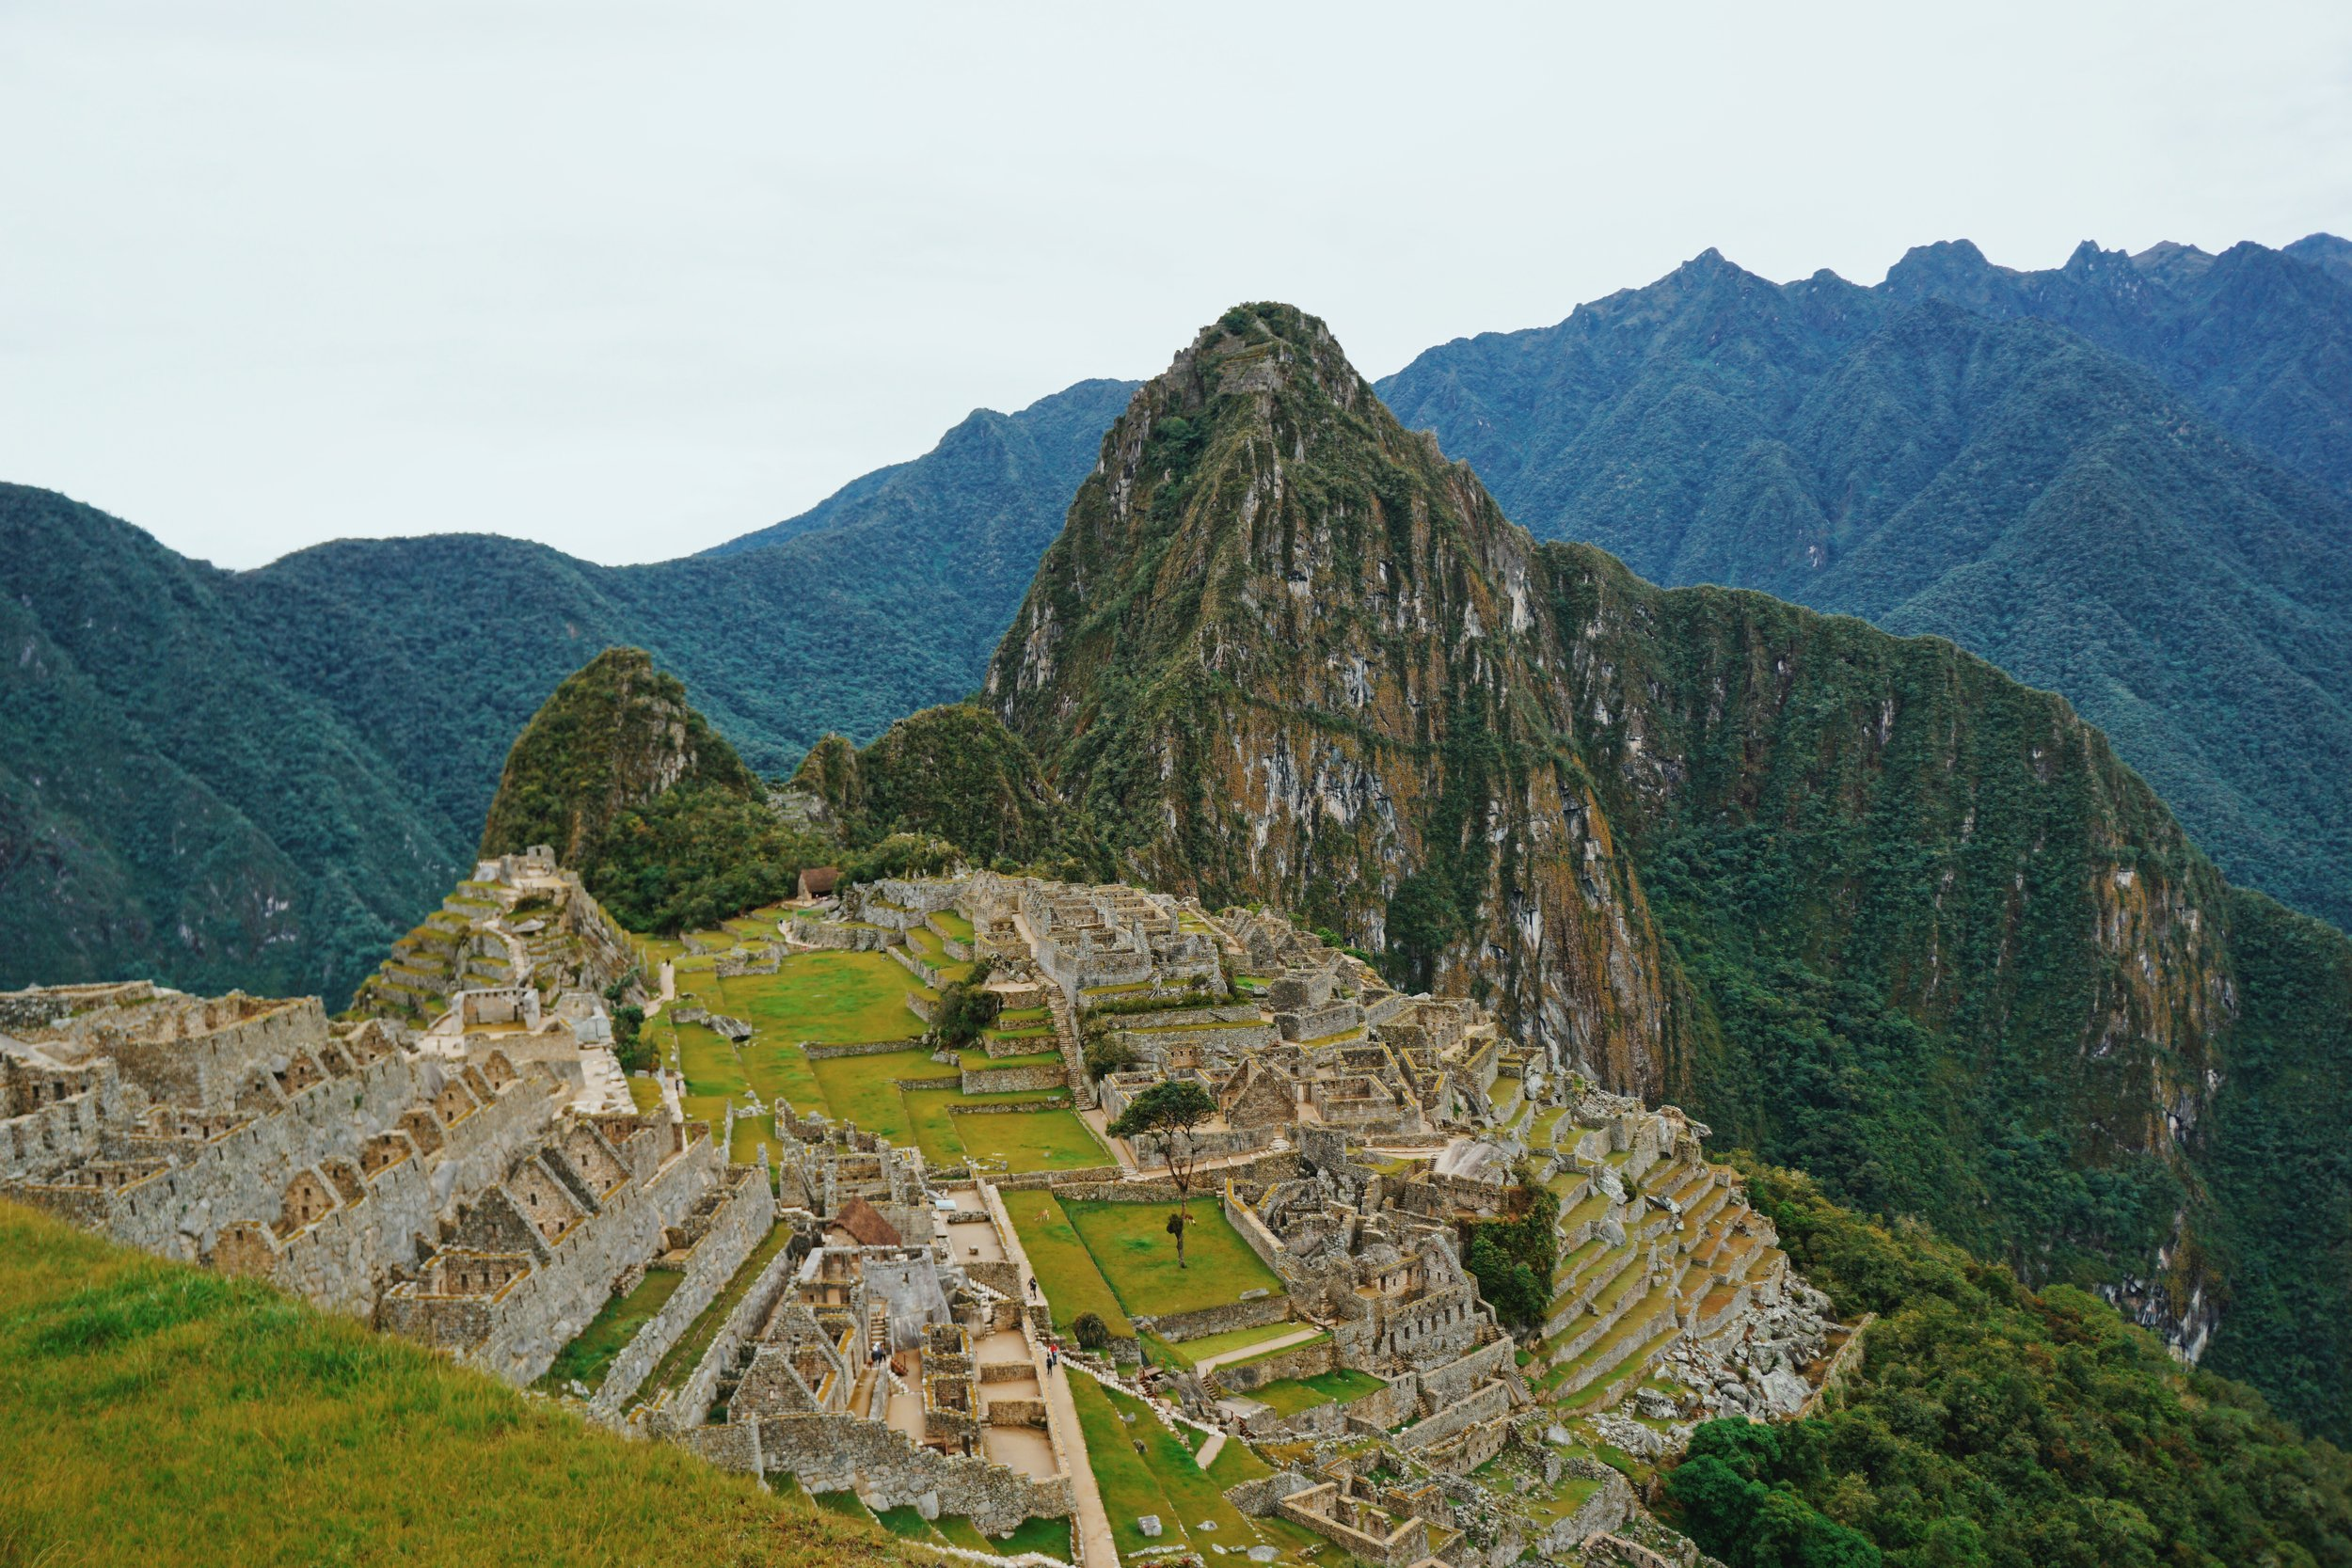 Machu Picchu, Peru: Relatively few tourists since we went in low season!